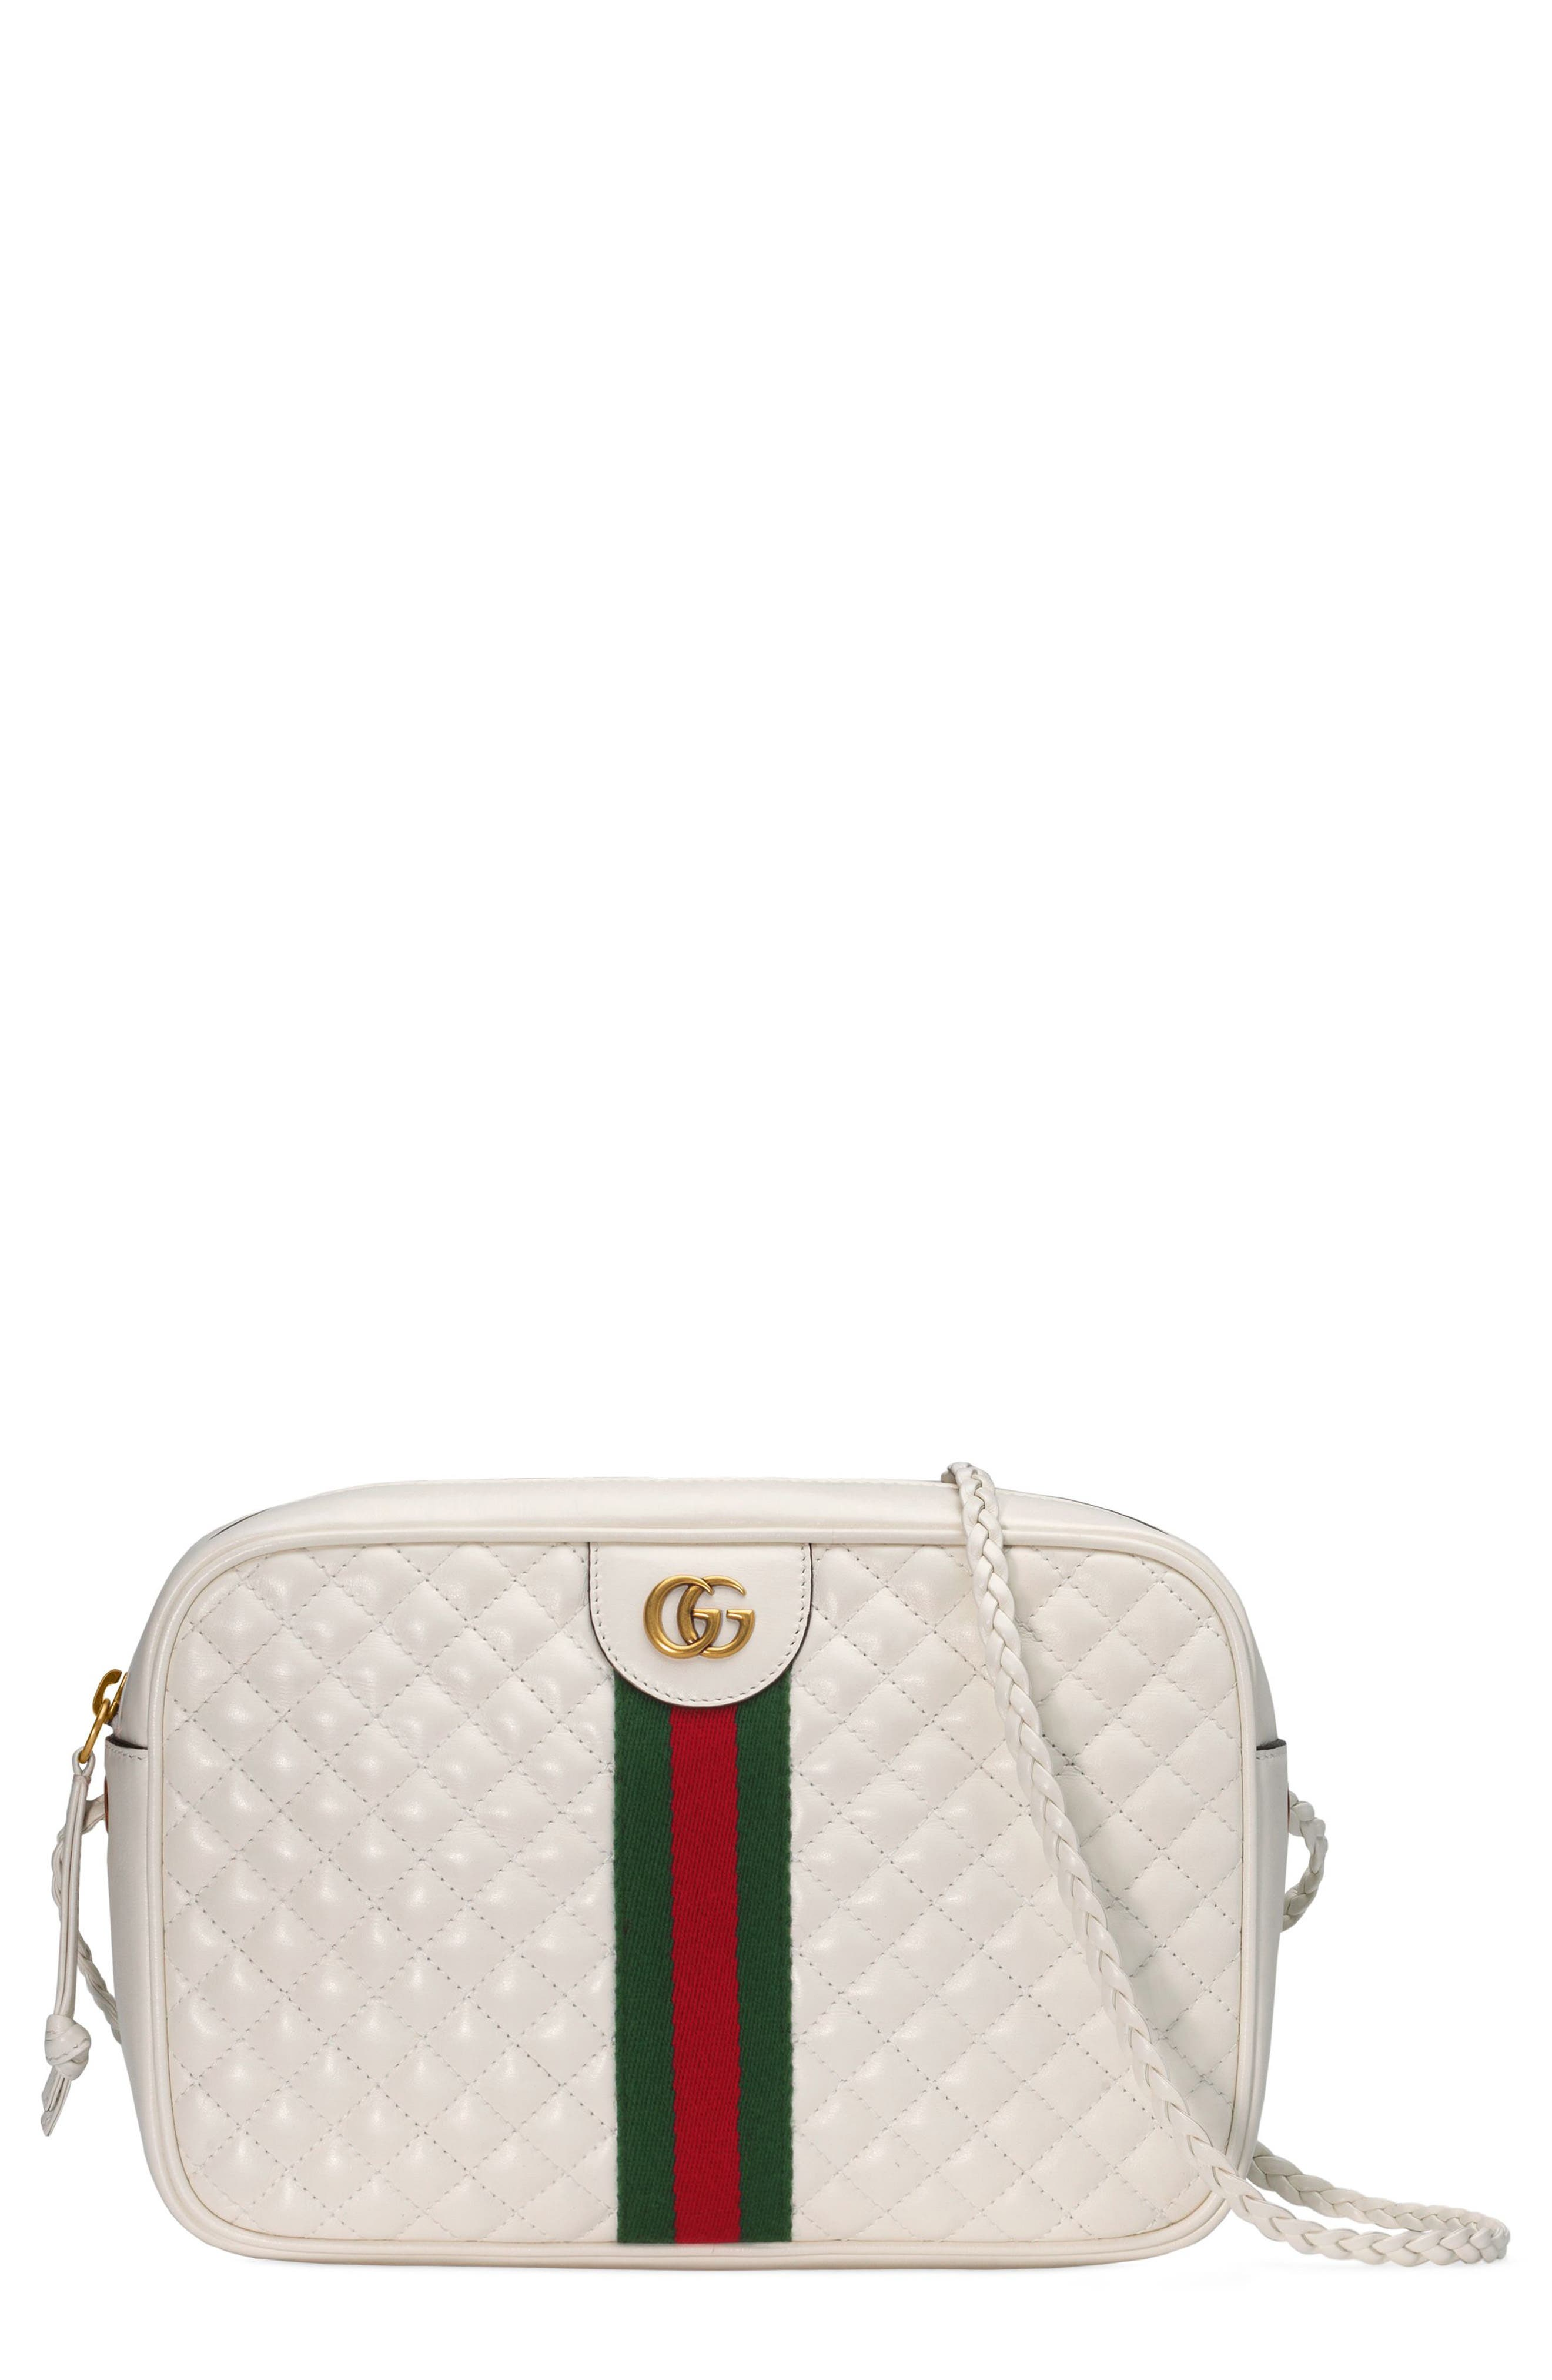 Small Quilted Leather Camera Bag,                             Main thumbnail 1, color,                             OFF WHITE/ VERT/ RED